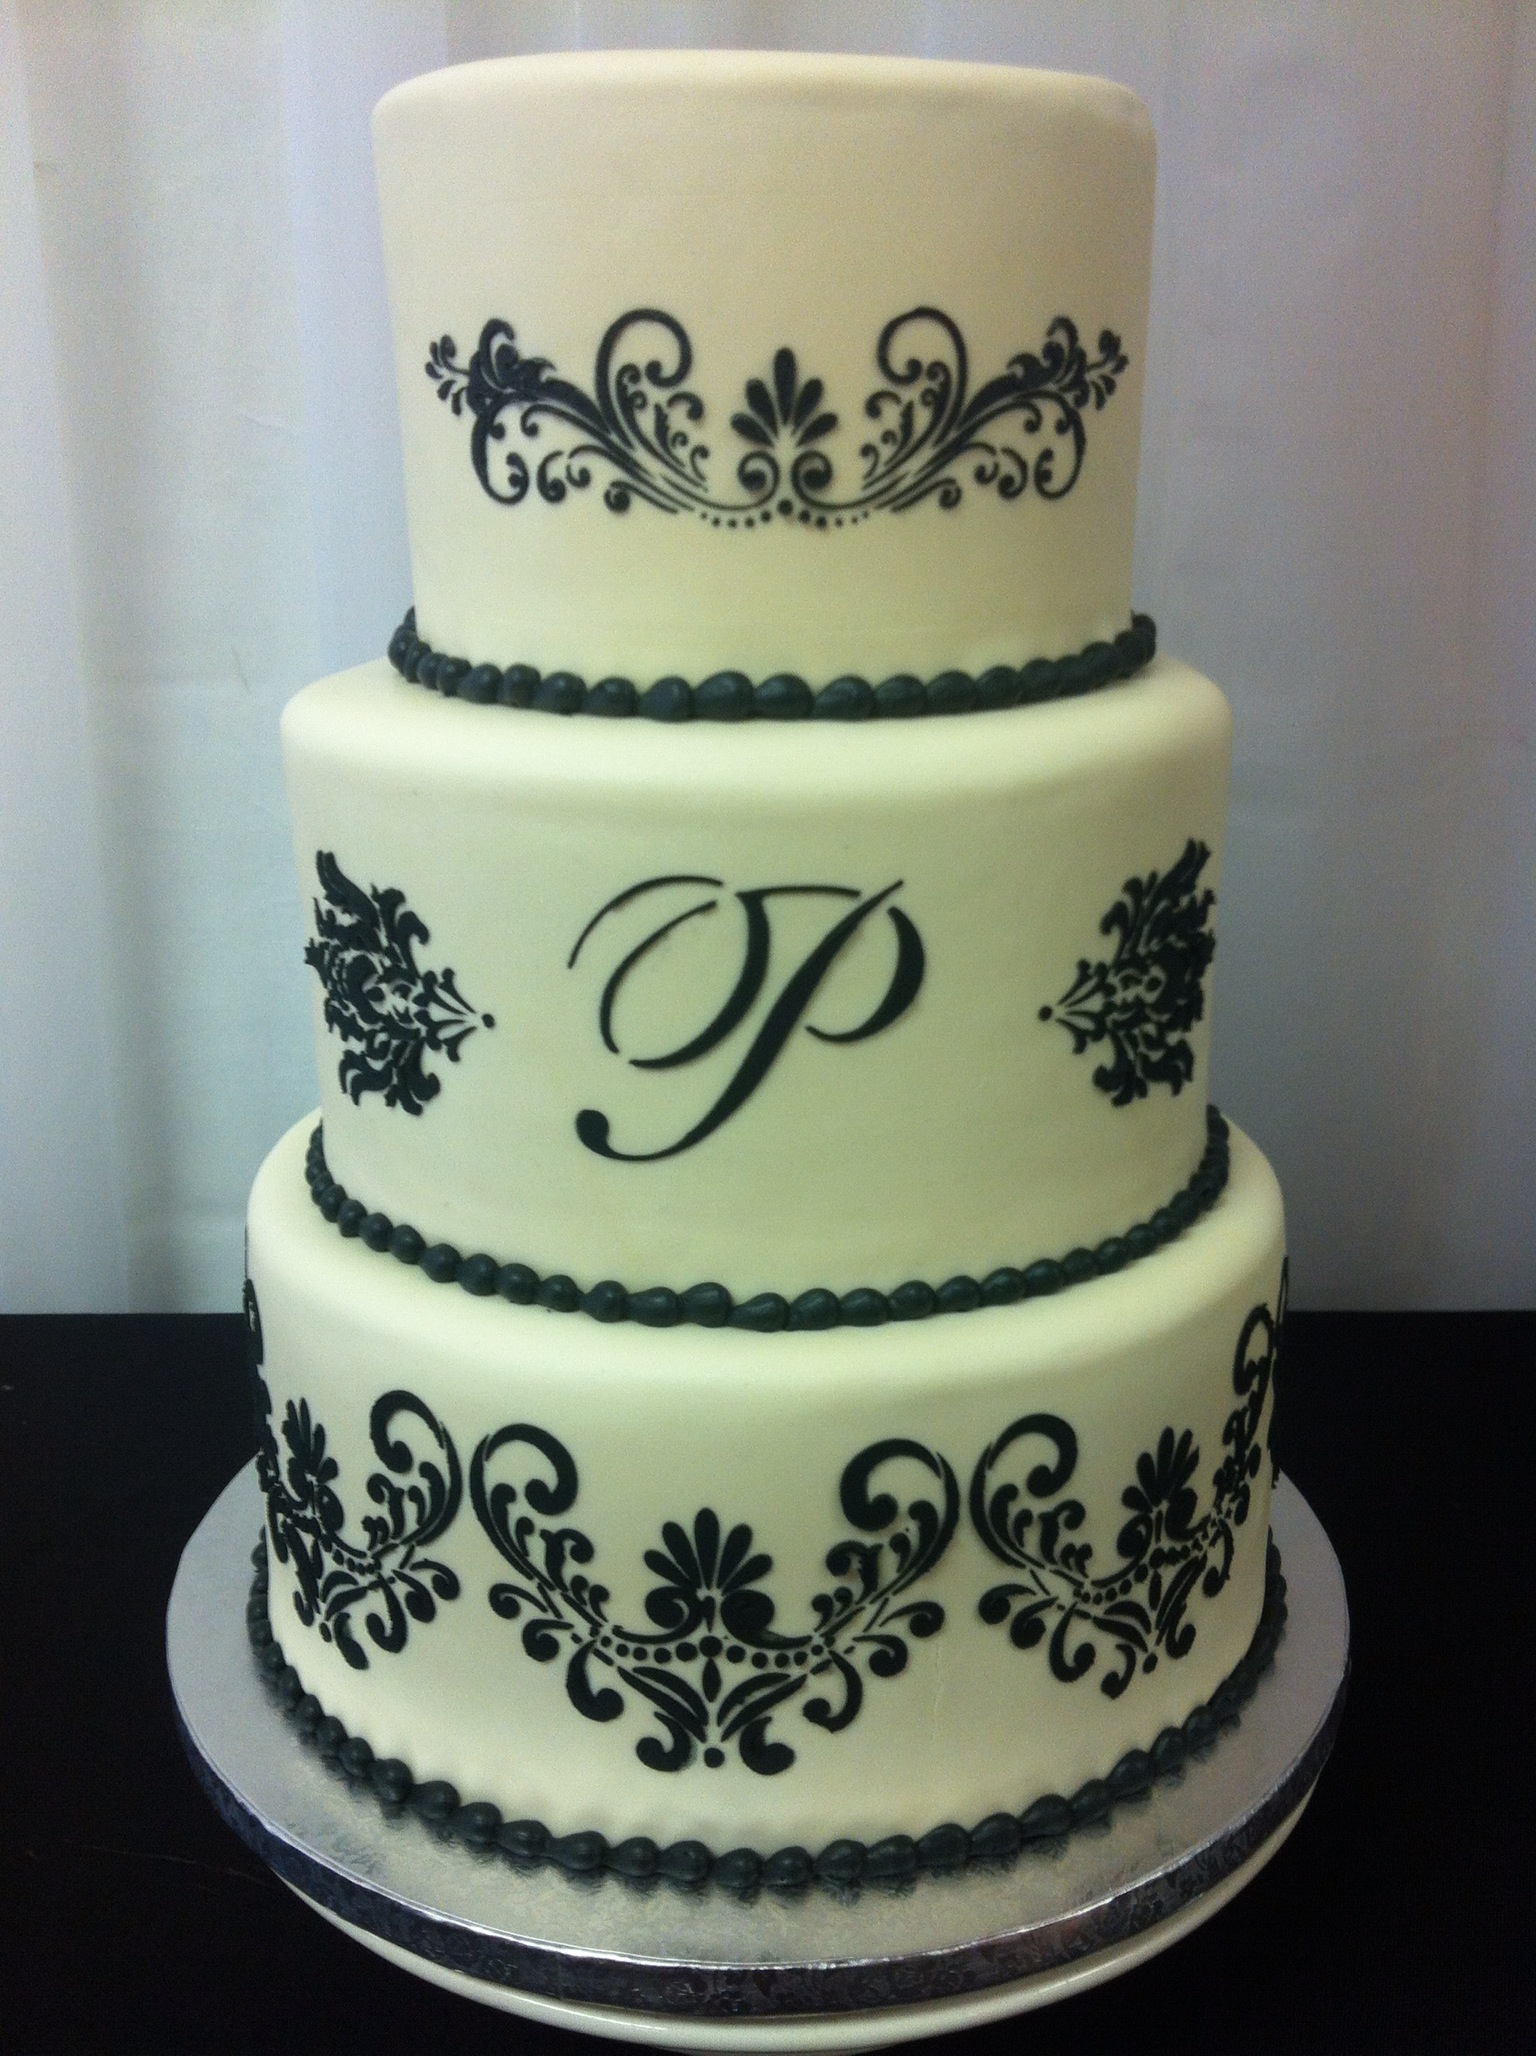 Black and white 3-tier wedding cake